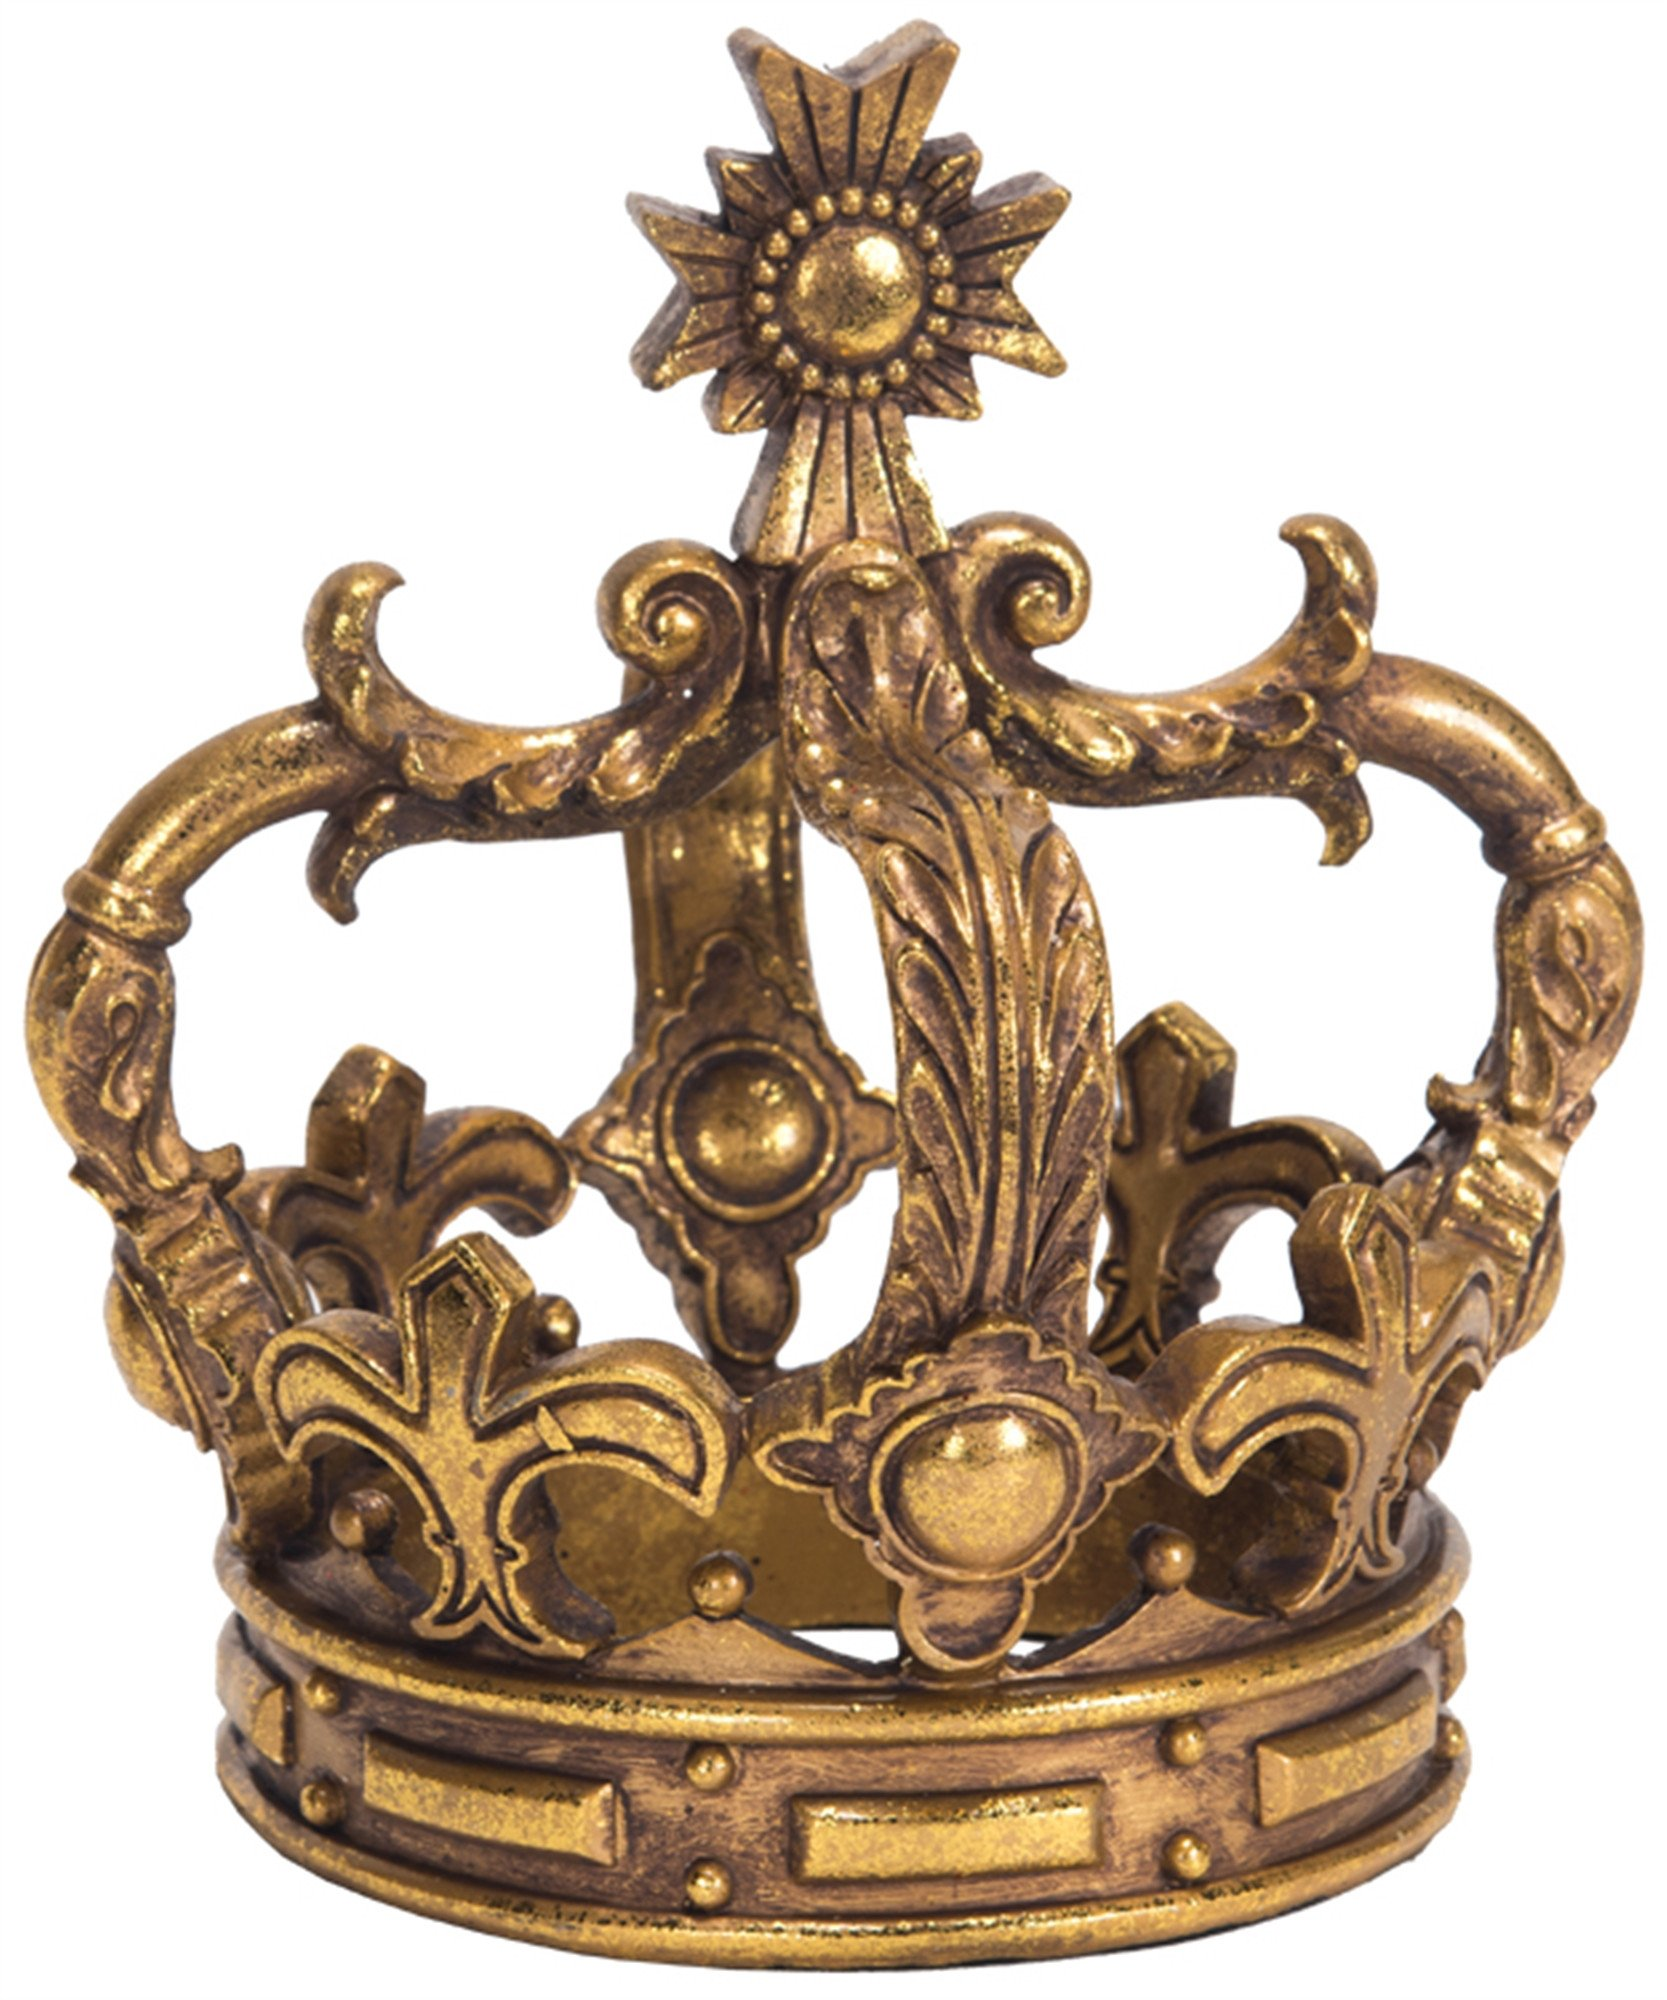 Decorative Crowns for Home Decor Best Of Antique Gold Tabletop Crown with Aged Golden Finish ornate Decorative Metal Centerpiece